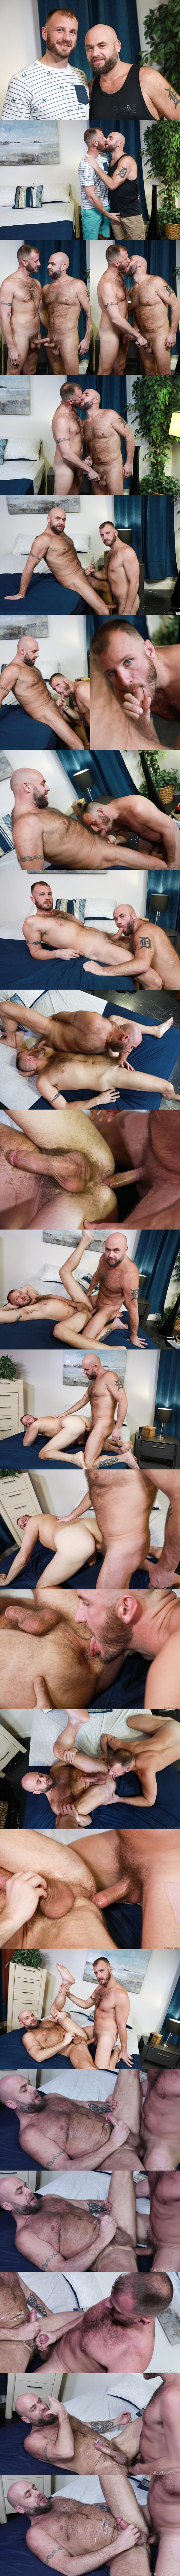 Masculine hairy daddy Chase Ryder and Jax Hammer take turns barebacking each other before Chase fucks the cum out of Jax in Chase's bottoming debut in Versatile Fur at Menover30 01